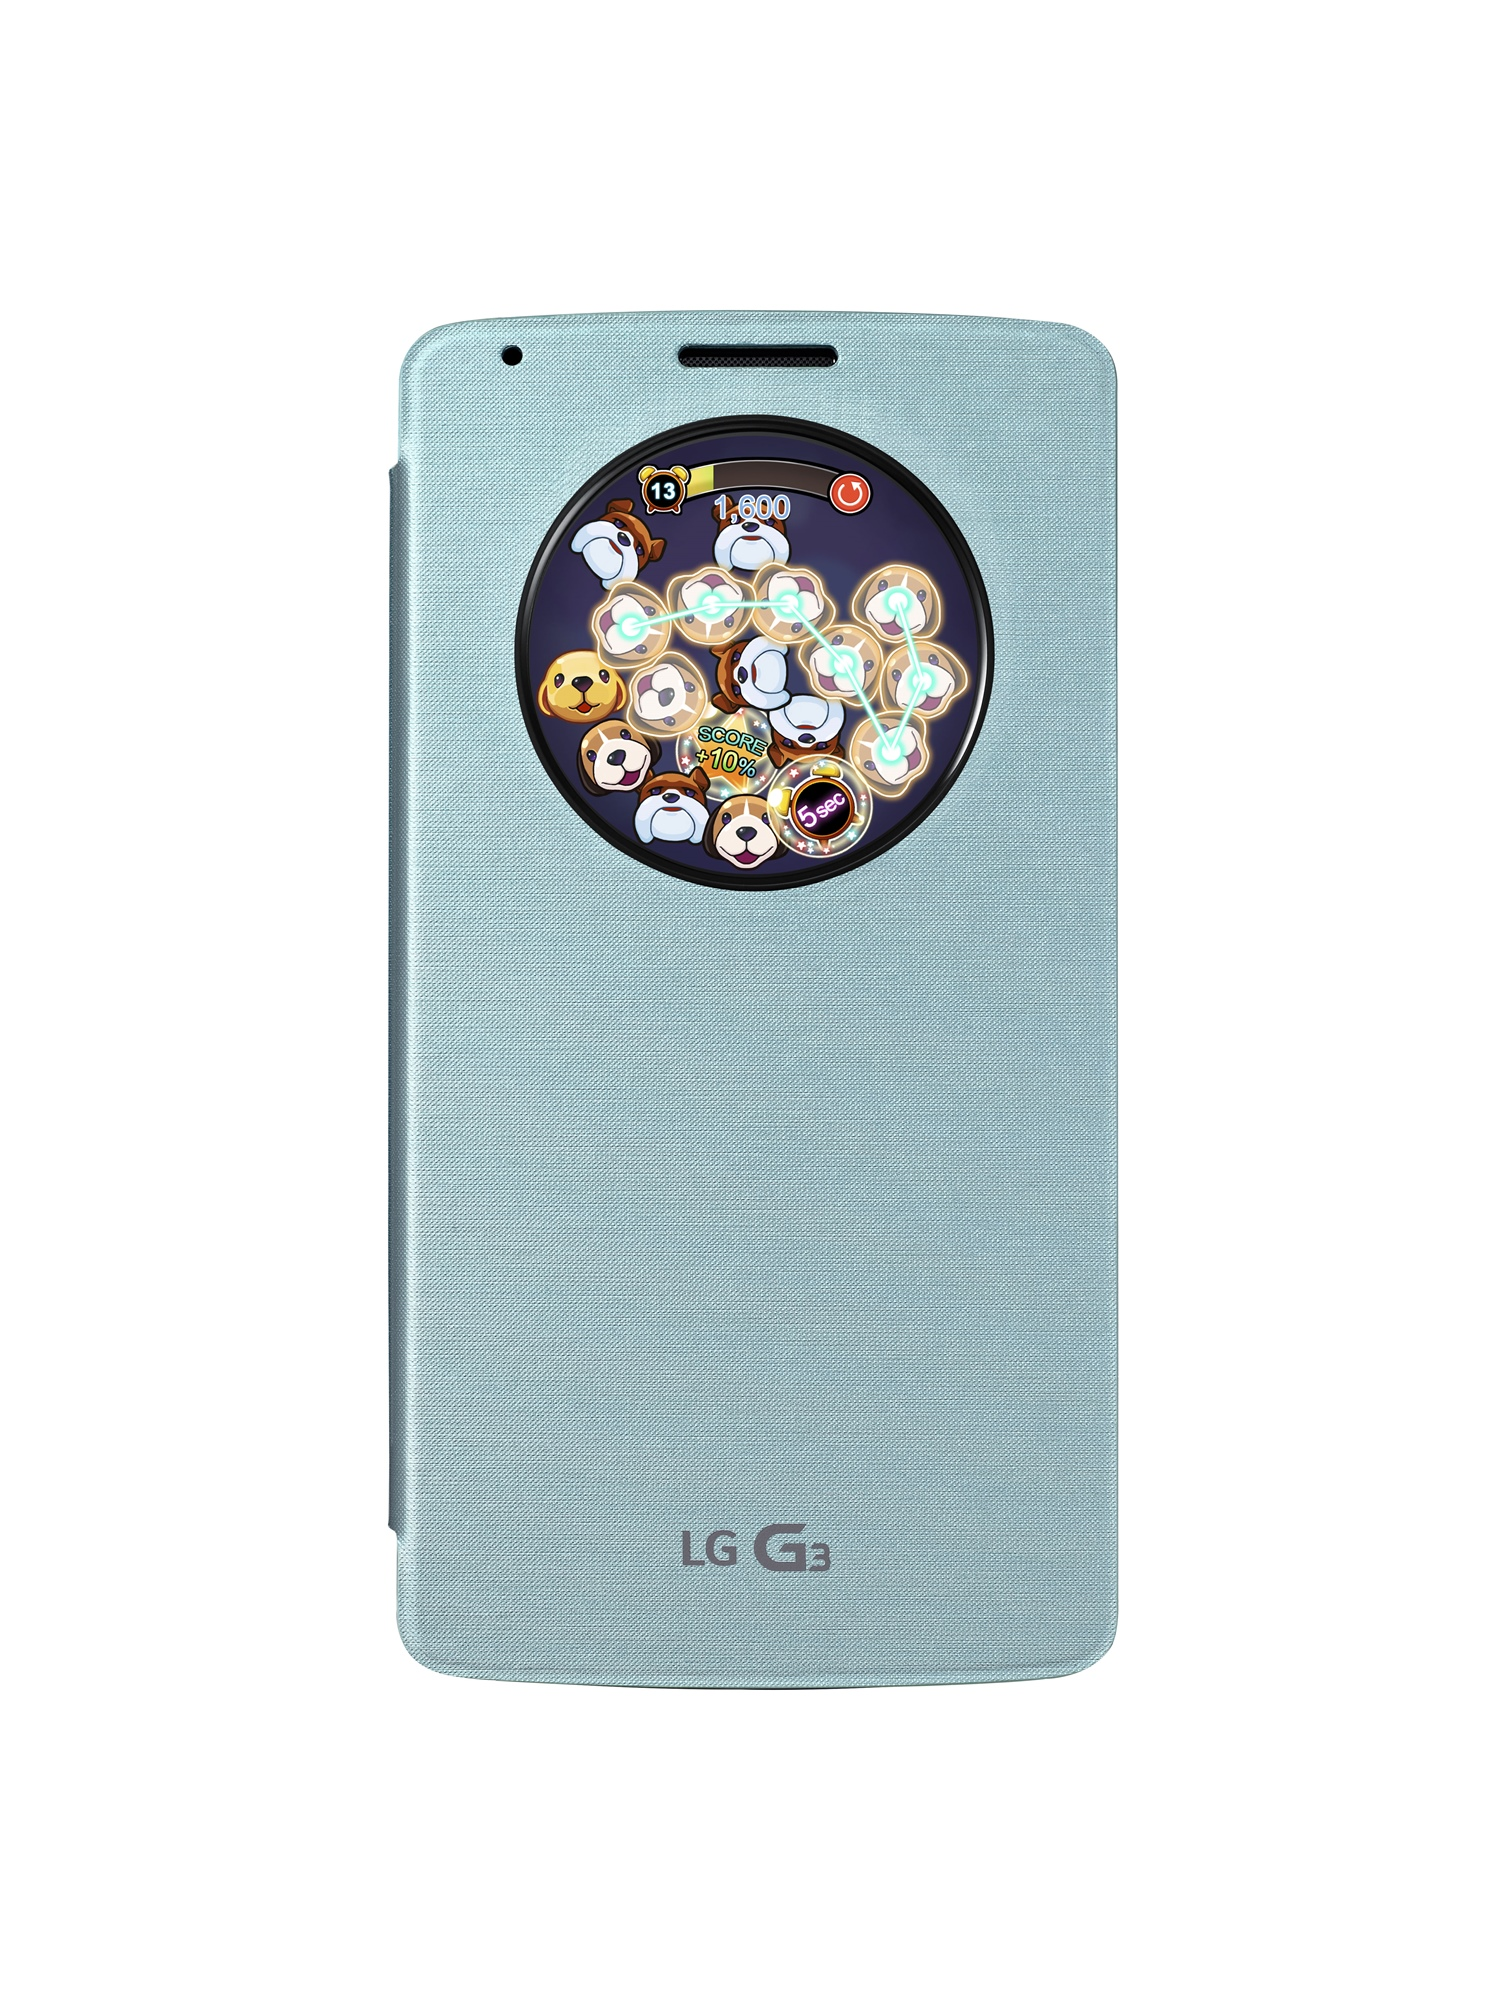 A front view of the G3 with QuickCircleTM Case in Aqua Mint color showing the screen of a game through the open window.